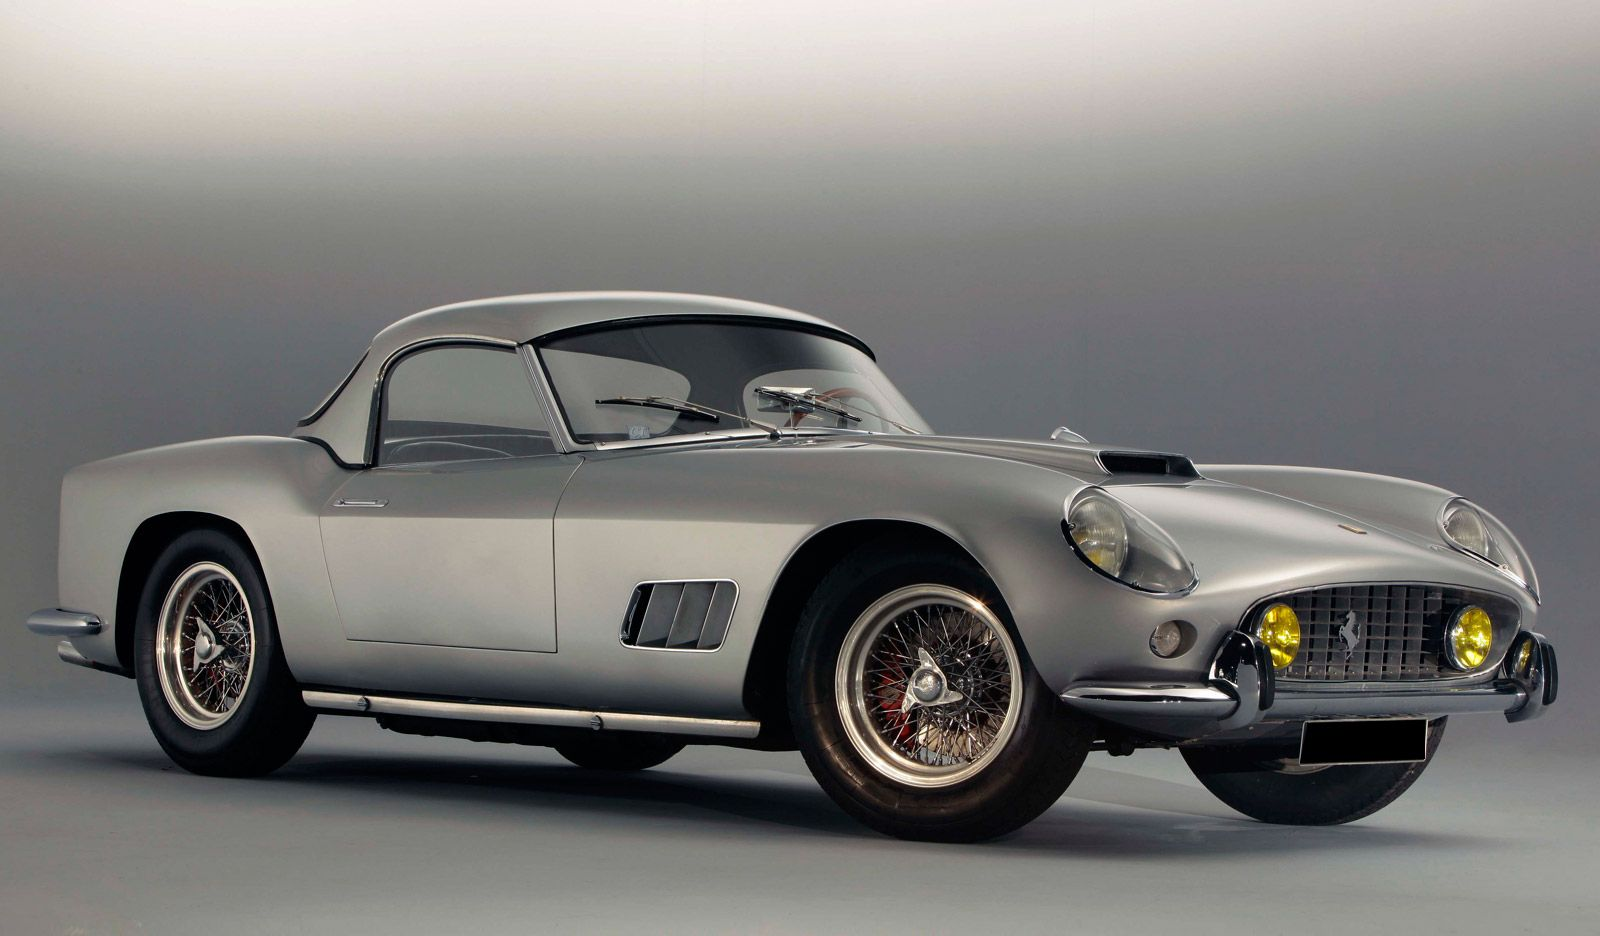 1959 Ferrari 250GT California Spider LWB - I have always been more of a Lambo guy. For reasons beyond looks. Like why the founder of Lamborghini started the company. But this... this 250 GT California is a classic. :)